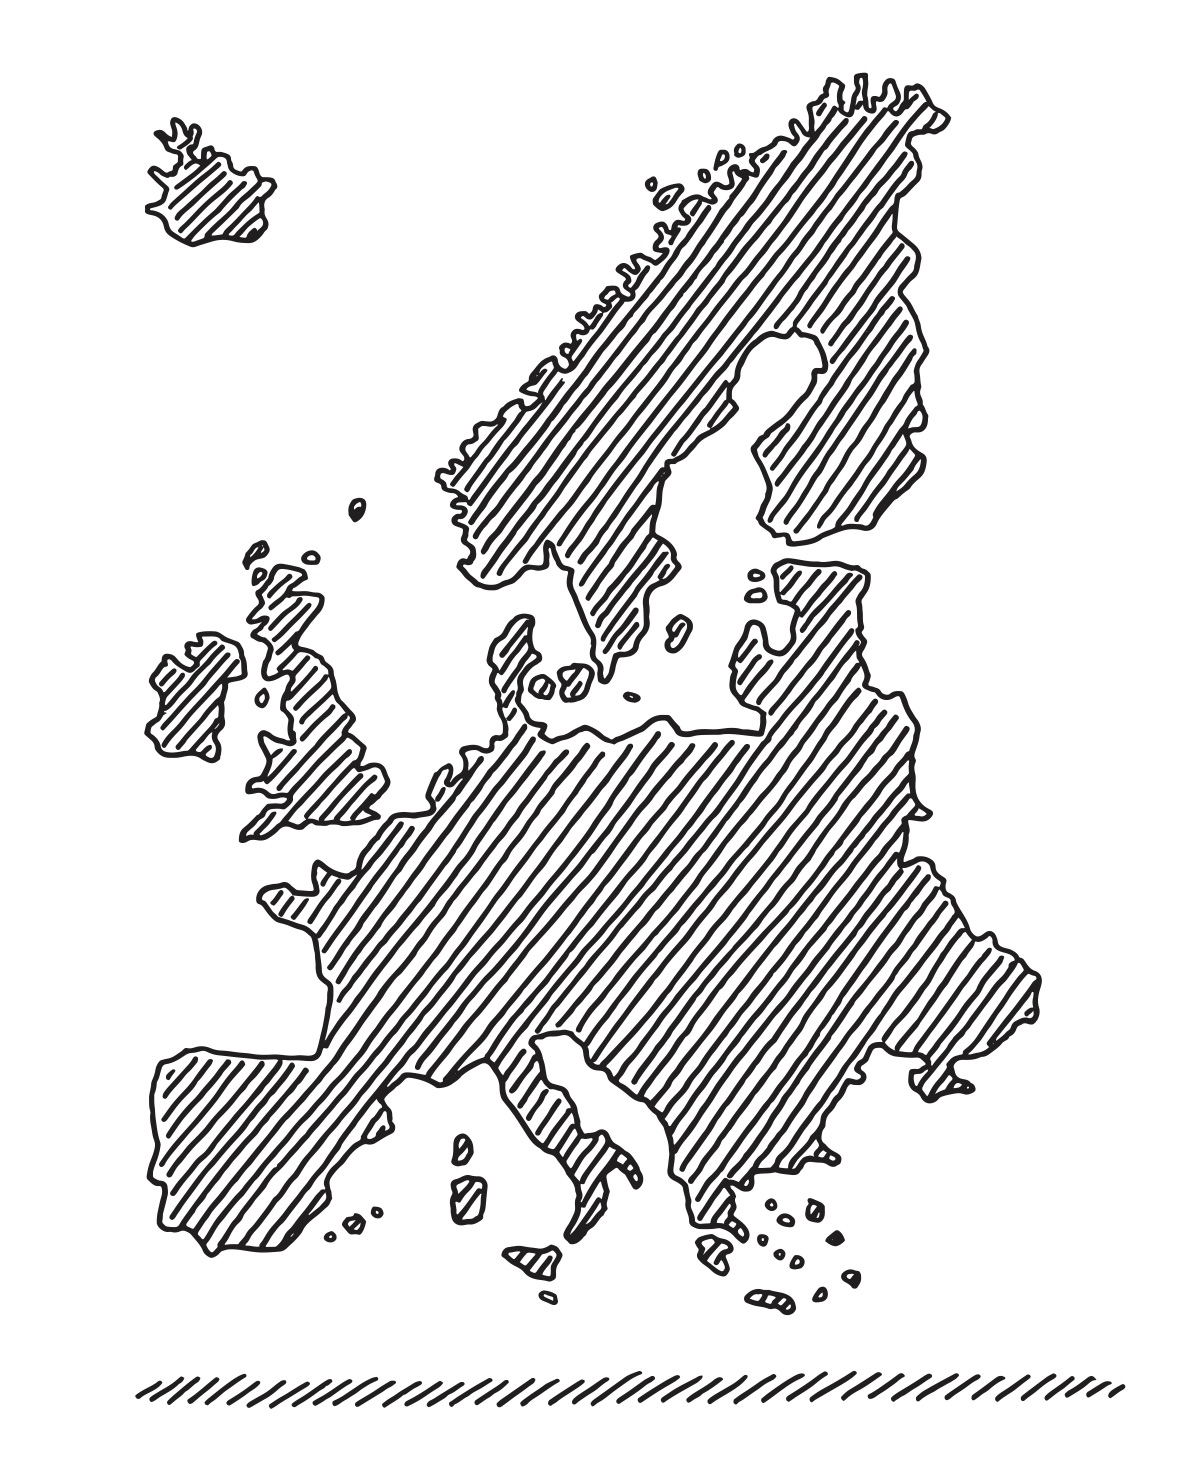 IOI Europe: Invest in European scholarly communication Open Infrastructure